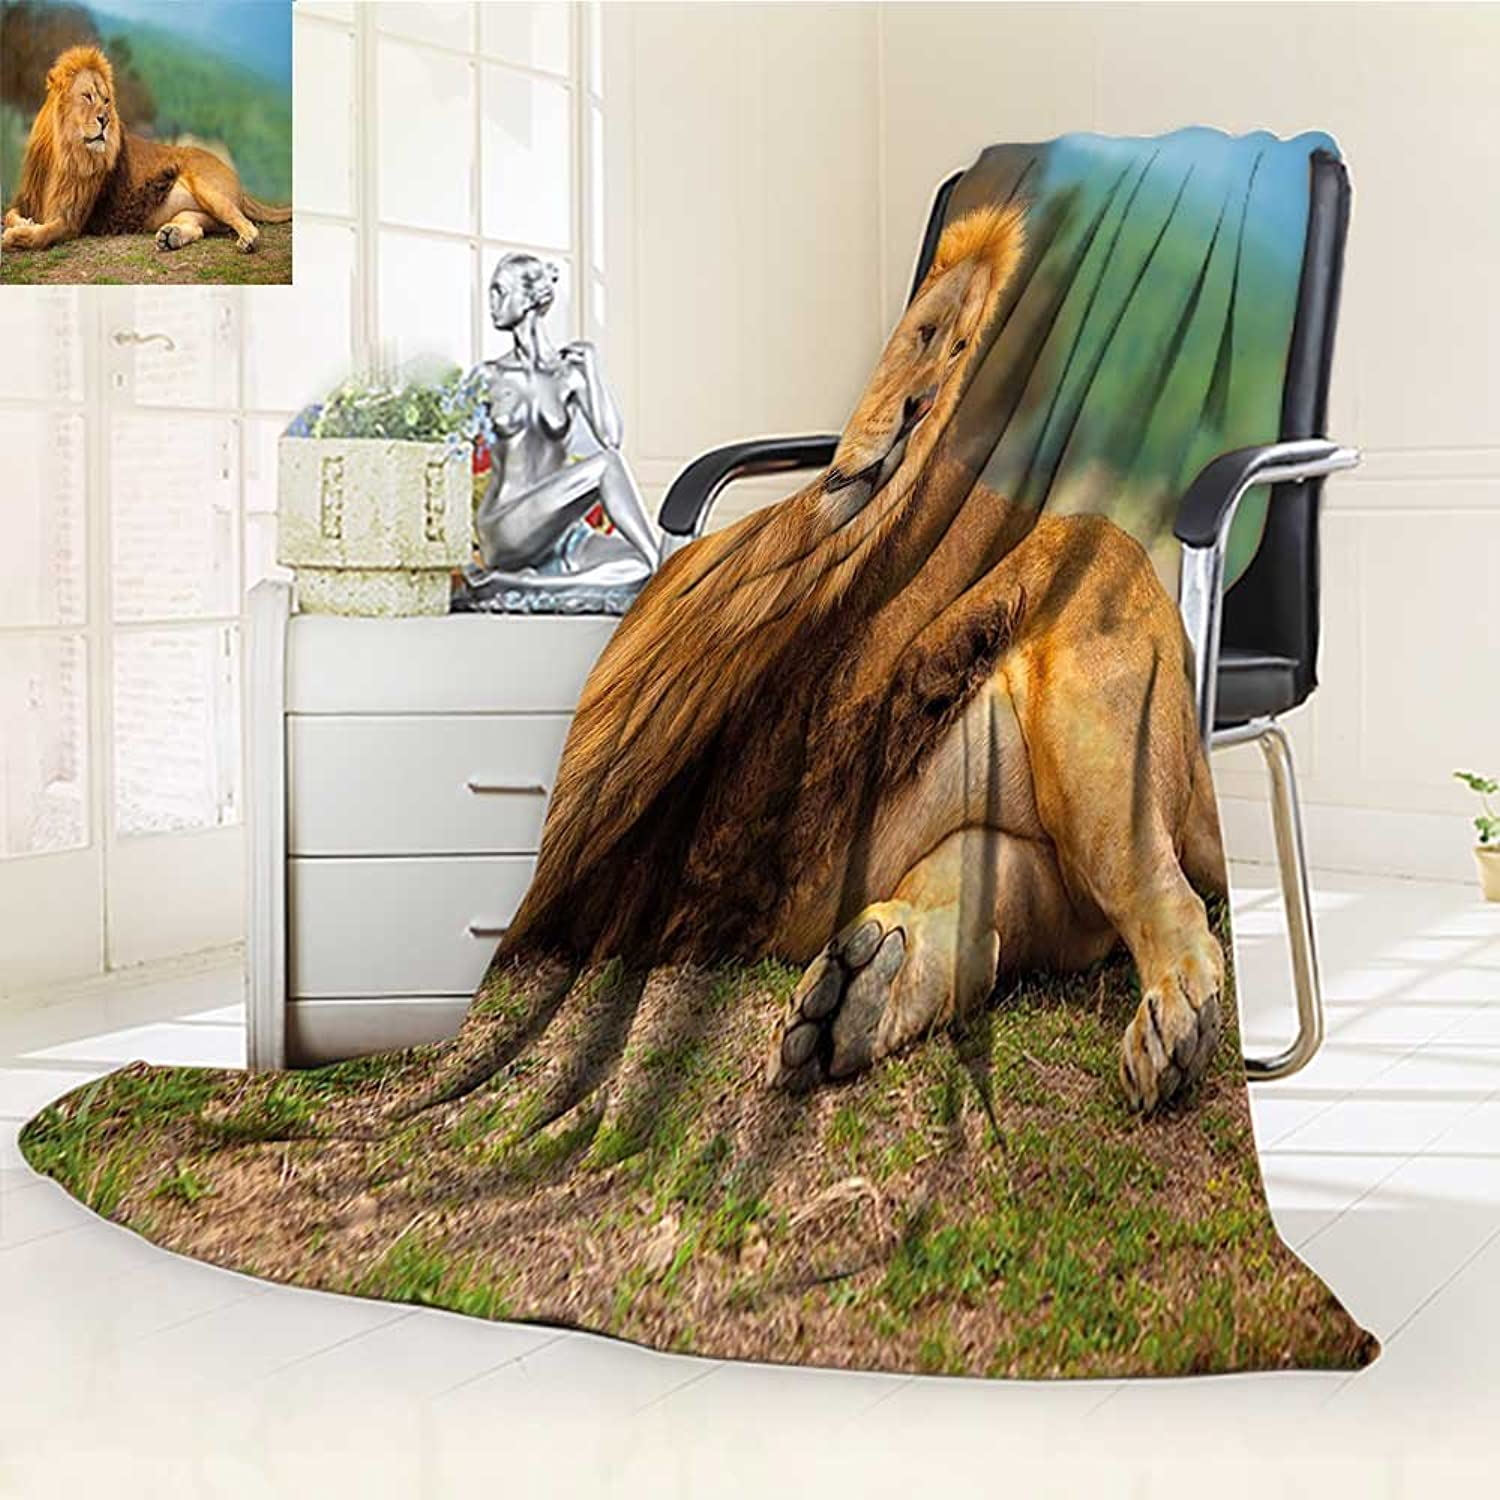 YOYI-HOME Digital Printing Duplex Printed Blanket Lion Lying and Resting on The Top of The Mountain Digital Print Light Coffee and Fern Green Summer Quilt Comforter  W59 x H39.5